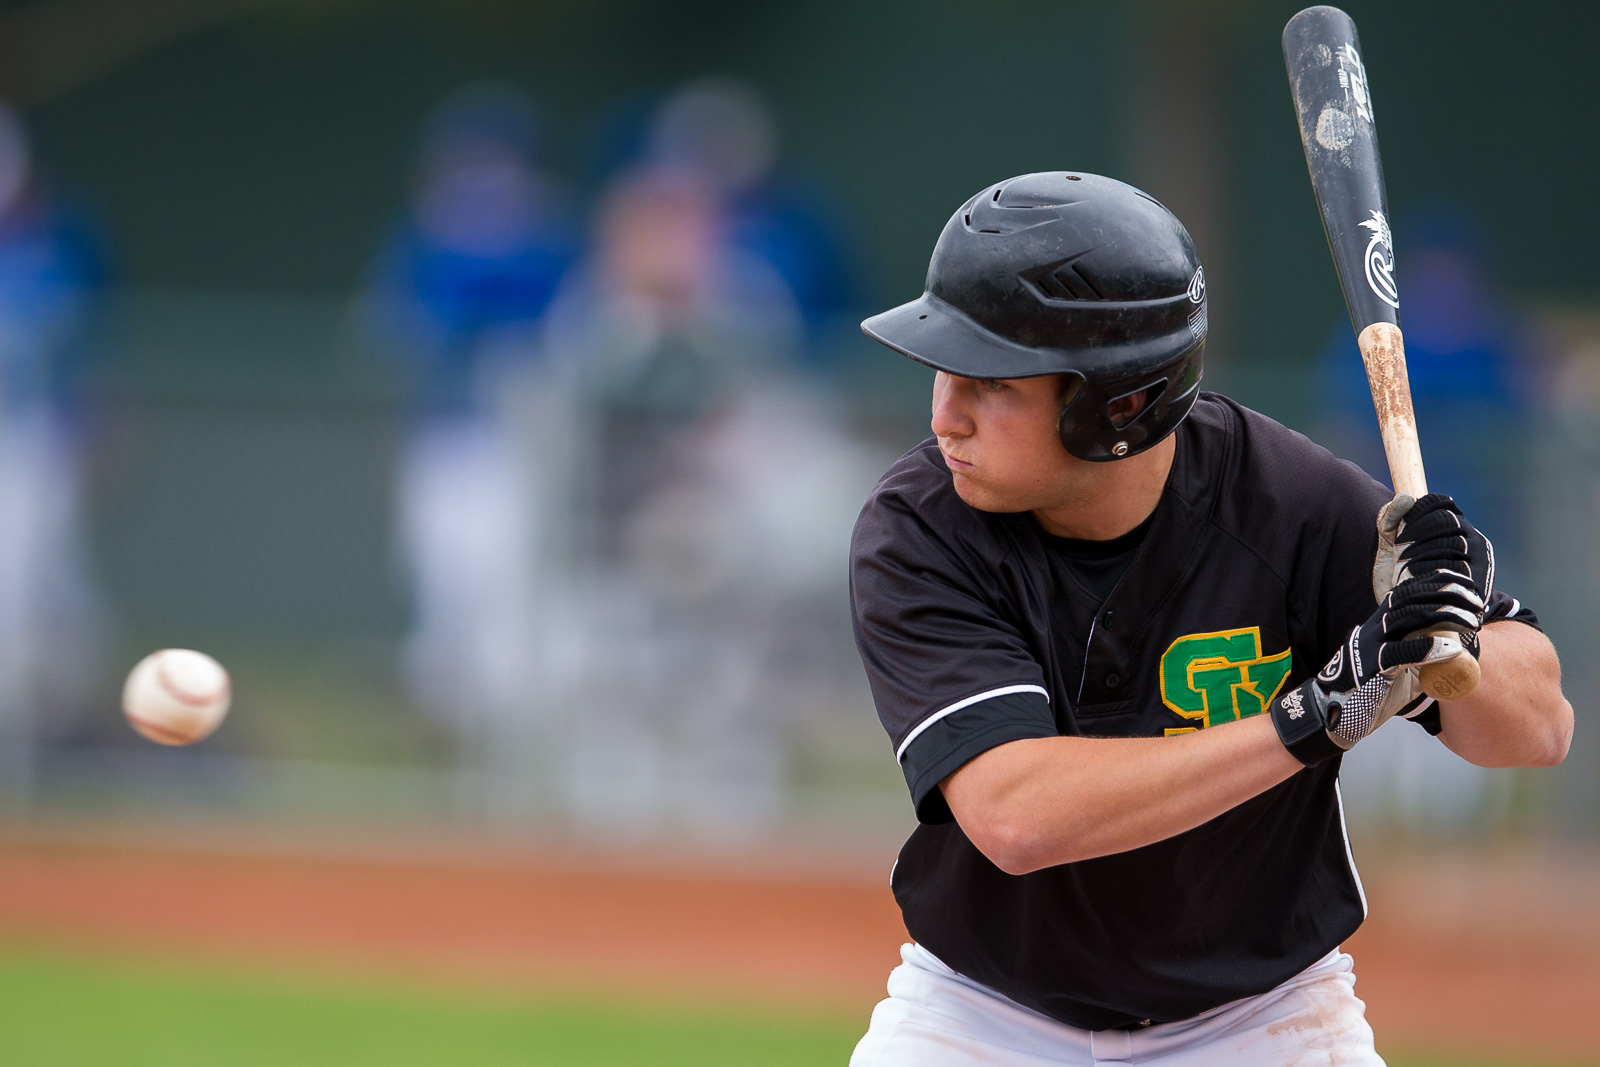 Saskatchewan's Jordan Malainey was 3-for-3 with three RBIs in a win over Newfoundland to remain undefeated at 3-0.Photo: Just Sports Photography.